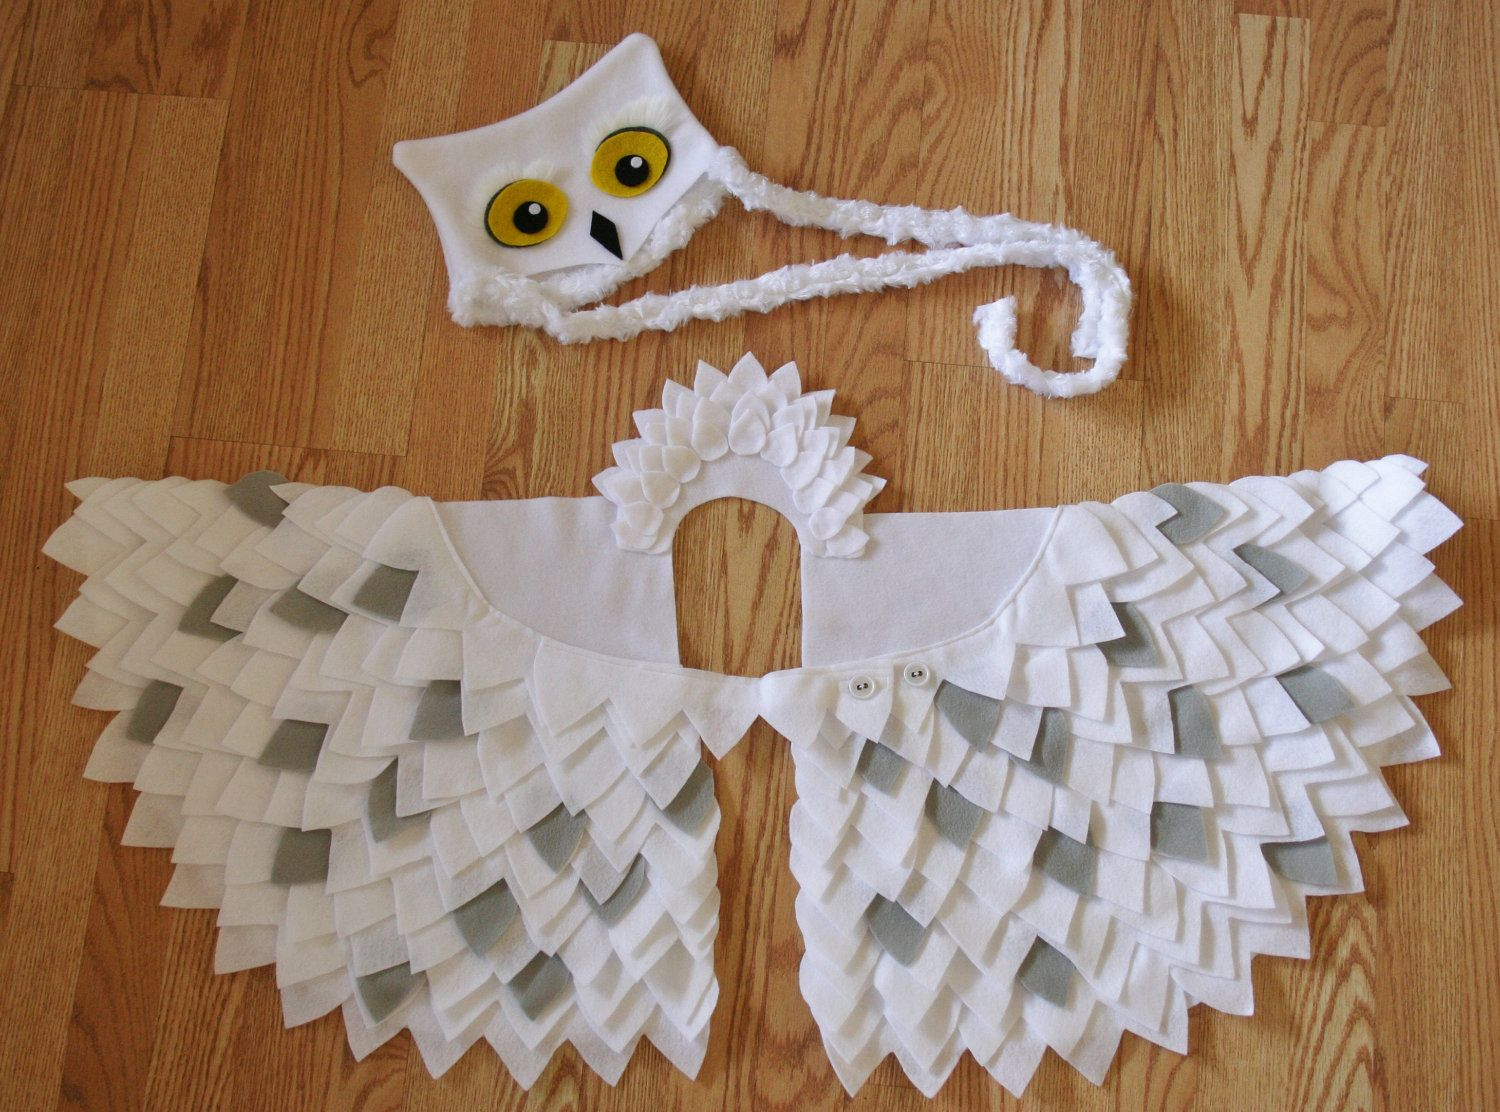 Owl Costume- Snowy Owl- Imagination Play- Dress Up- Hedwig- Harry Potter- Halloween. $74.00 via Etsy. & Owl Costume- Snowy Owl- Imagination Play- Dress Up- Hedwig- Harry ...